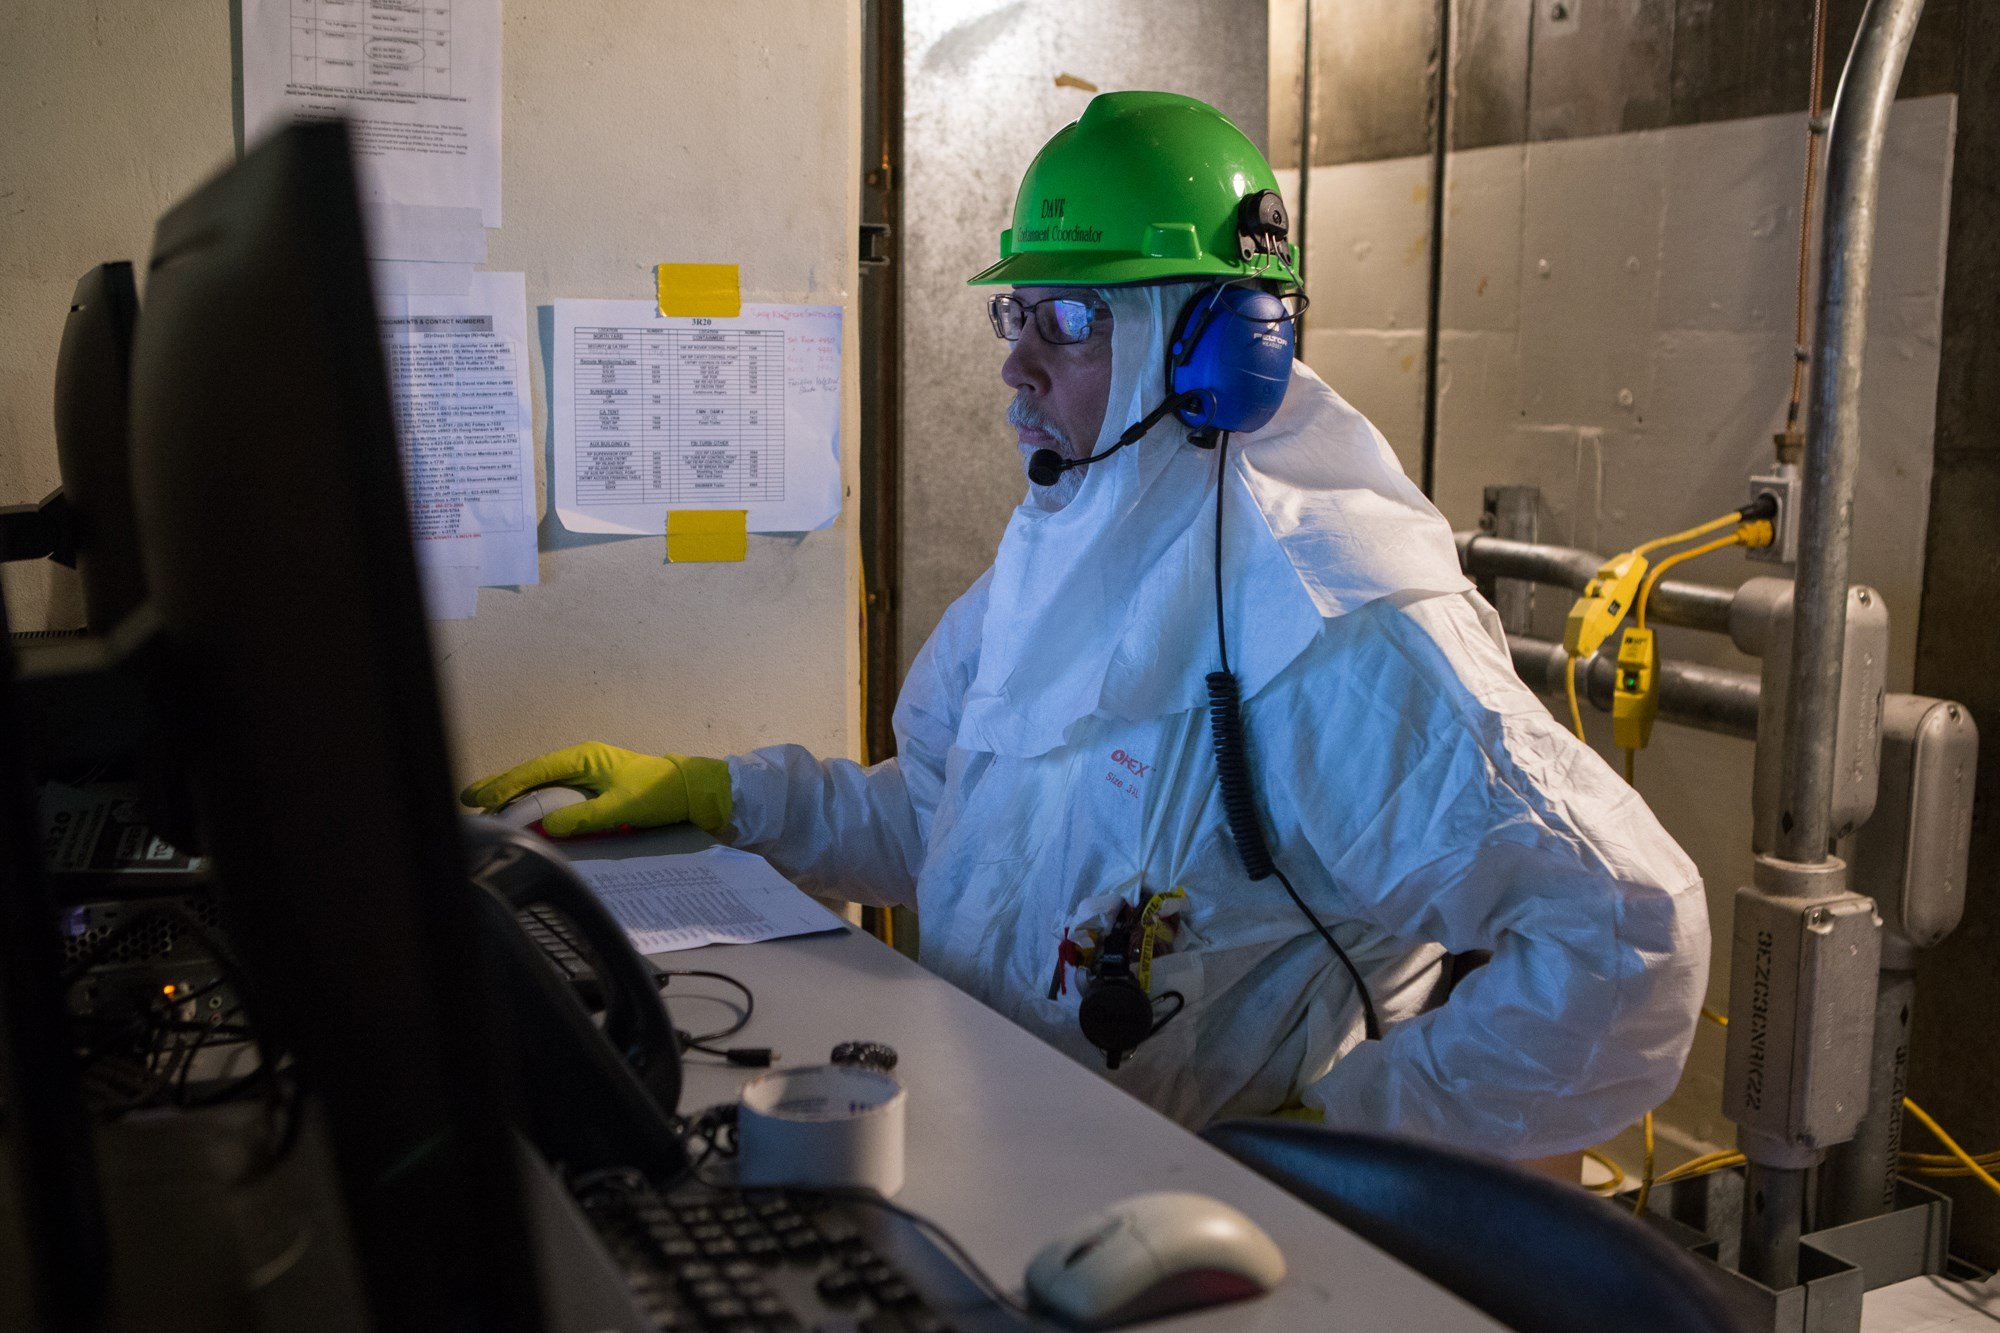 Containment coordinator Dave Mills works inside the nuclear containment building at Palo Verde in April. The nuclear power plant could be affected by a potential ballot initiative on clean energy. (Source: Jenna Miller/ Cronkite News)